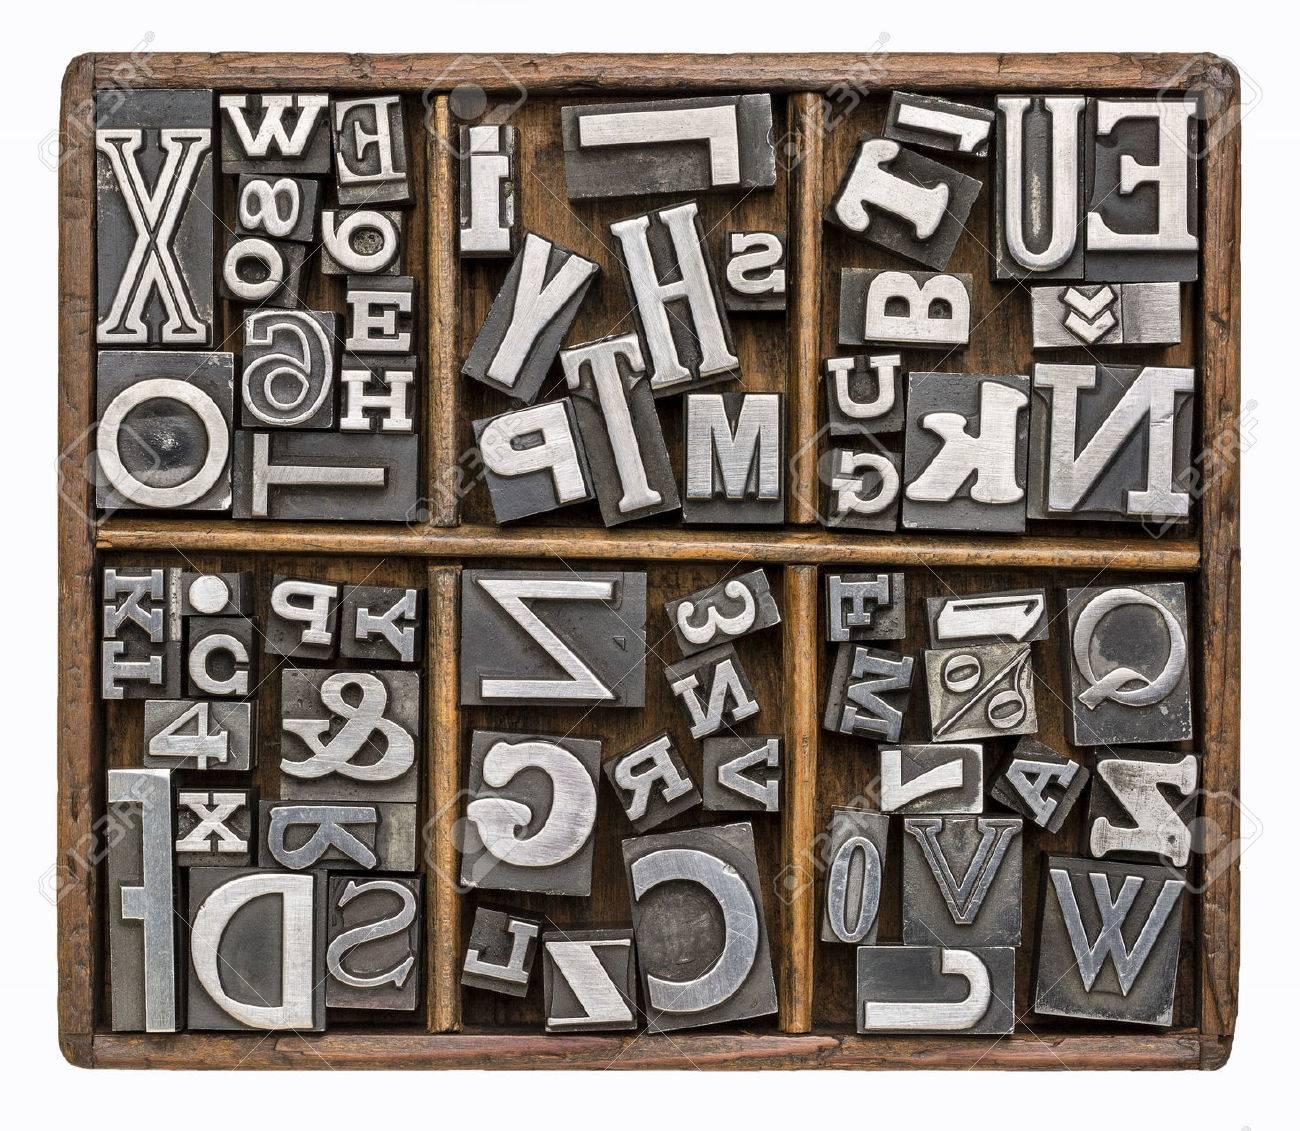 Alphabet and other symbols in old metal type printing blocks alphabet and other symbols in old metal type printing blocks in a rustic wooden typesetter box biocorpaavc